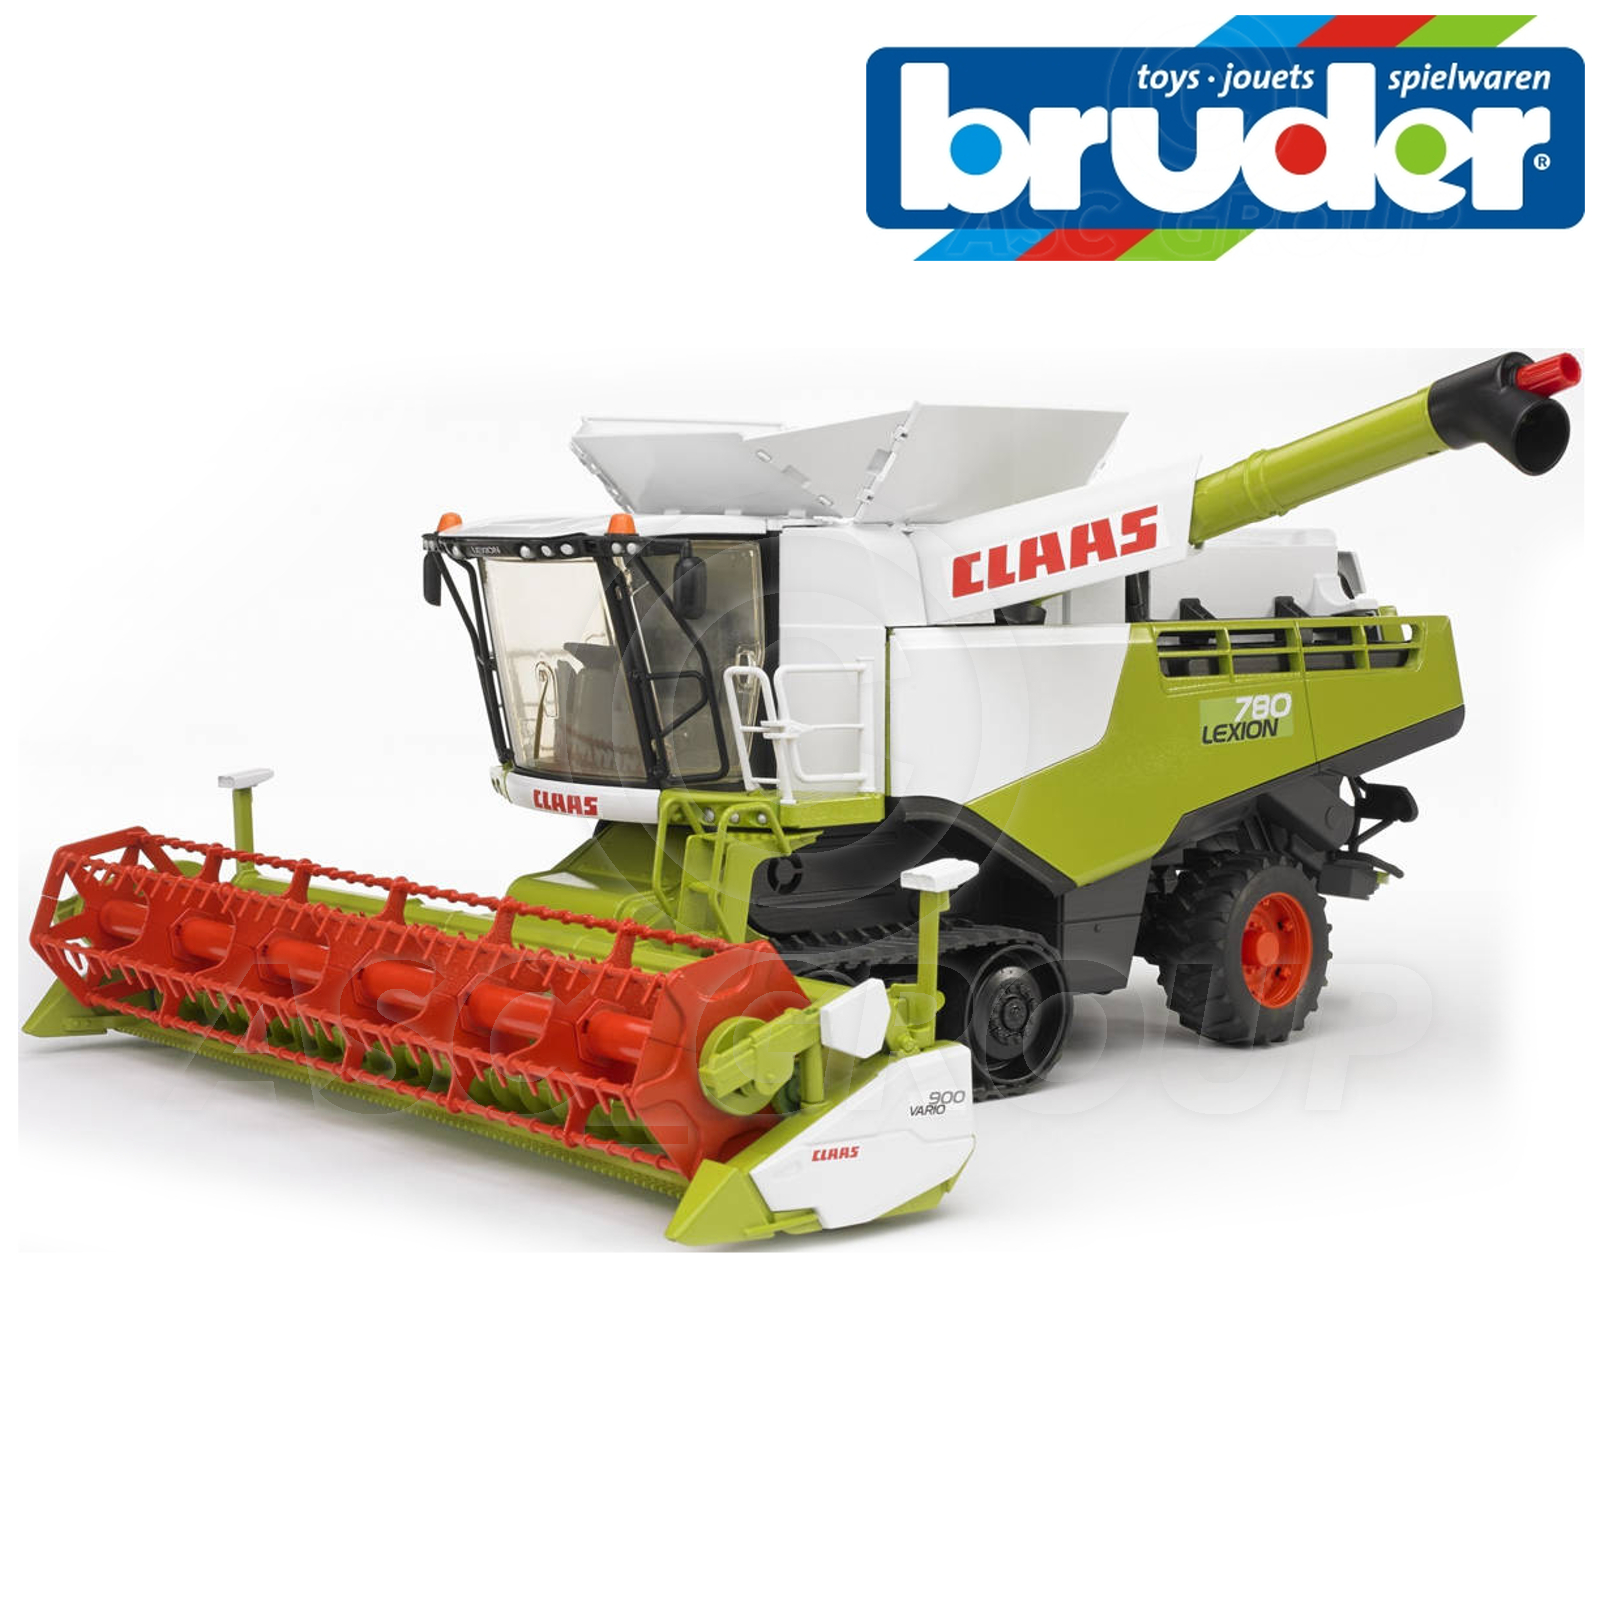 Bruder Claas Details About Bruder Toys 02119 Claas Lexion Terra Trac Combine Harvester 1 16 Scale Toy Model